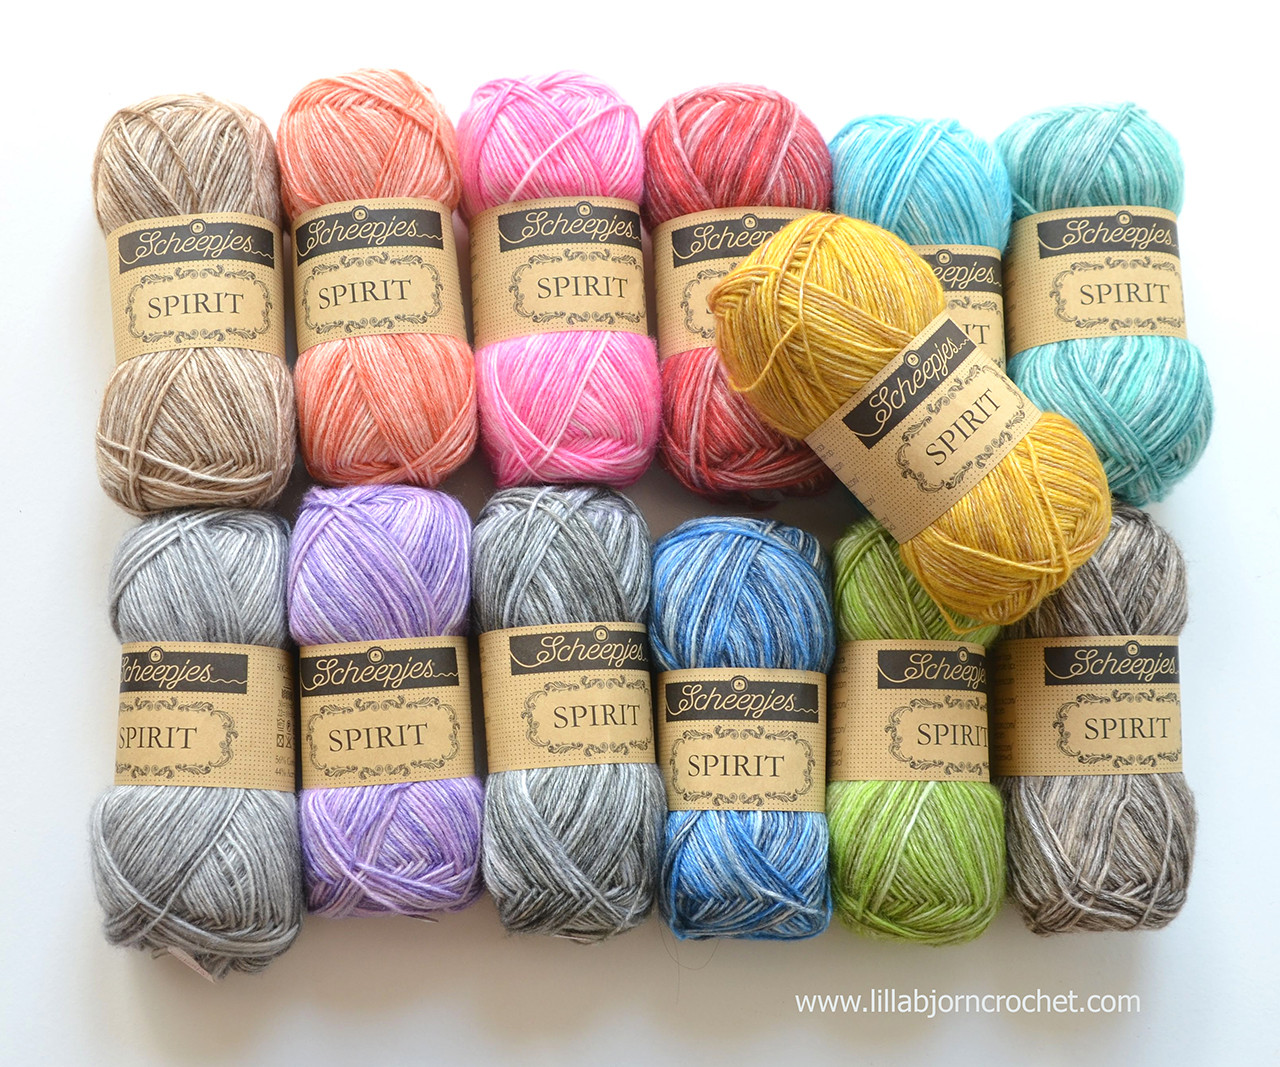 Cotton Yarn Crochet Patterns Awesome What is Your Animal Spirit Yarn Review Of Lovely 40 Models Cotton Yarn Crochet Patterns